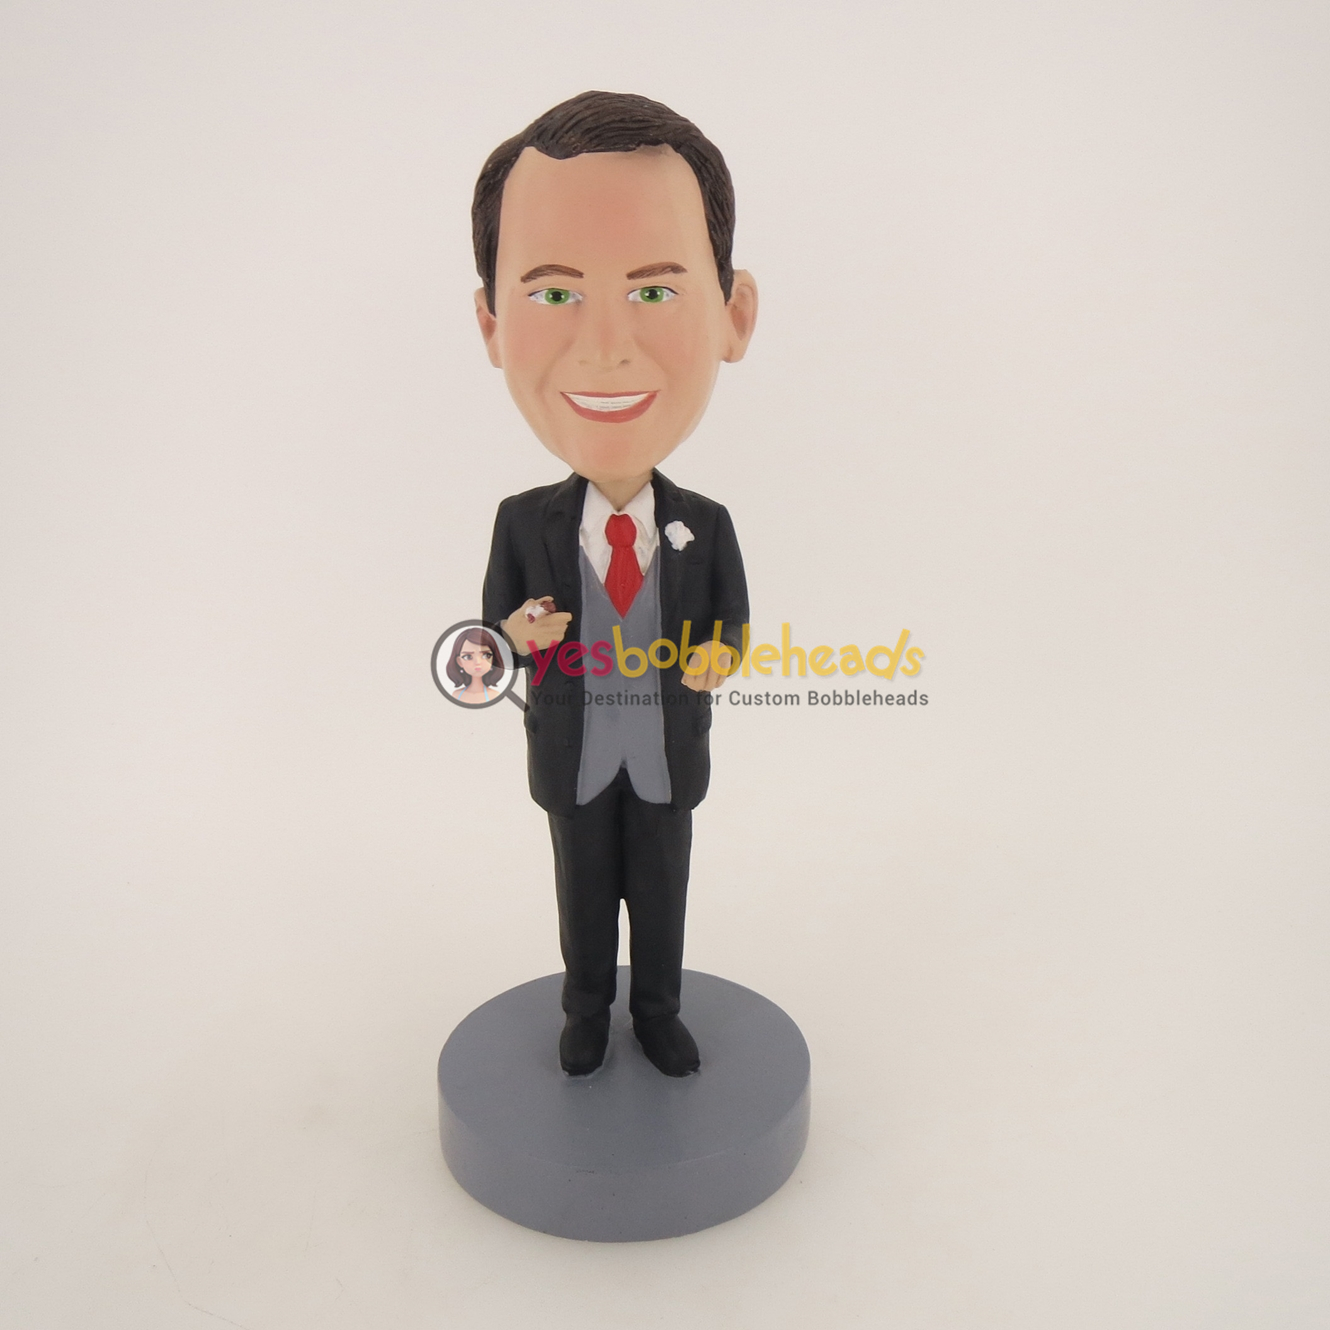 Picture of Custom Bobblehead Doll: Business Man Having Cigar